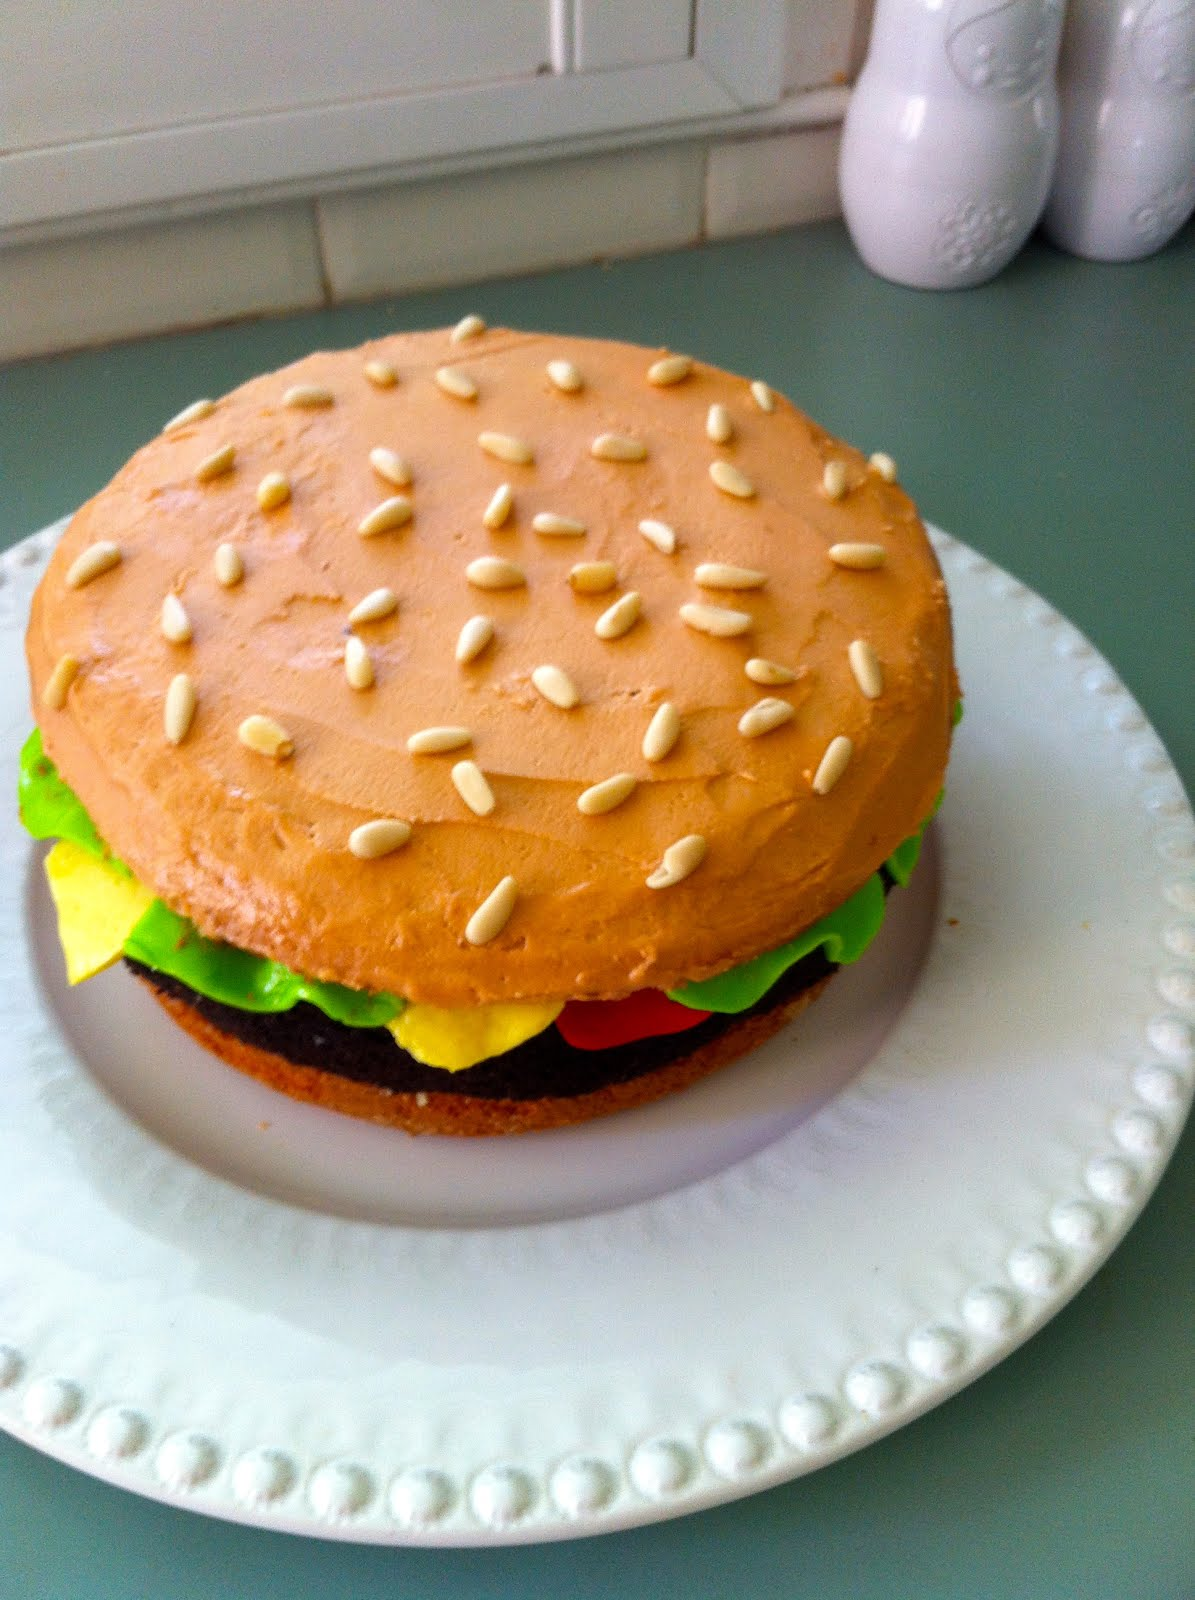 Giggleberry Creations!: Burger Birthday Cake!